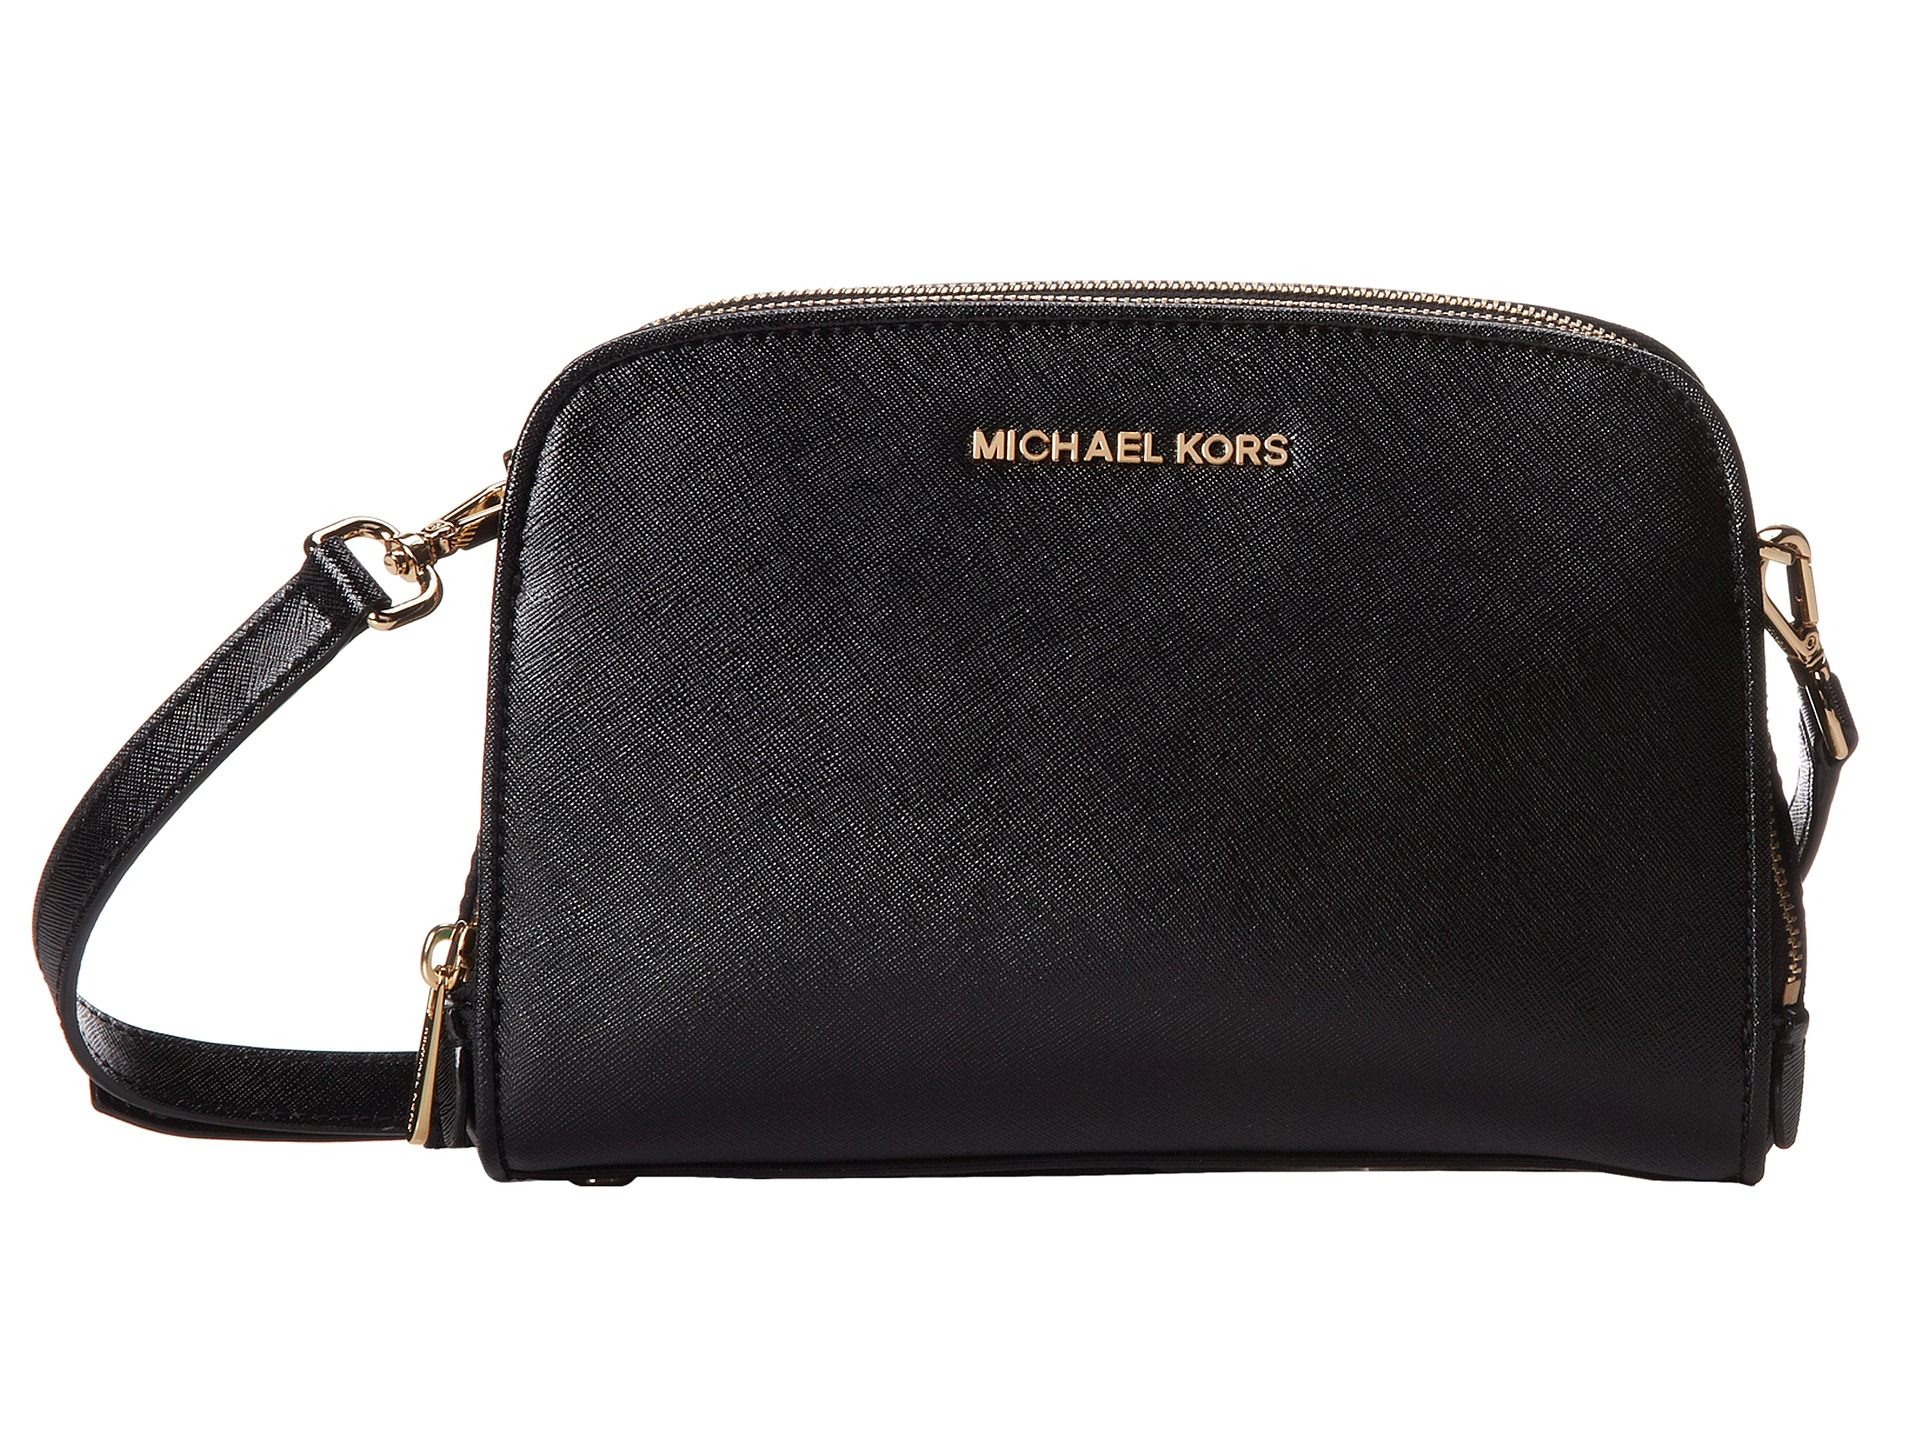 65d73ec06a64 Gallery. Previously sold at: Zappos · Women's Michael Michael Kors ...